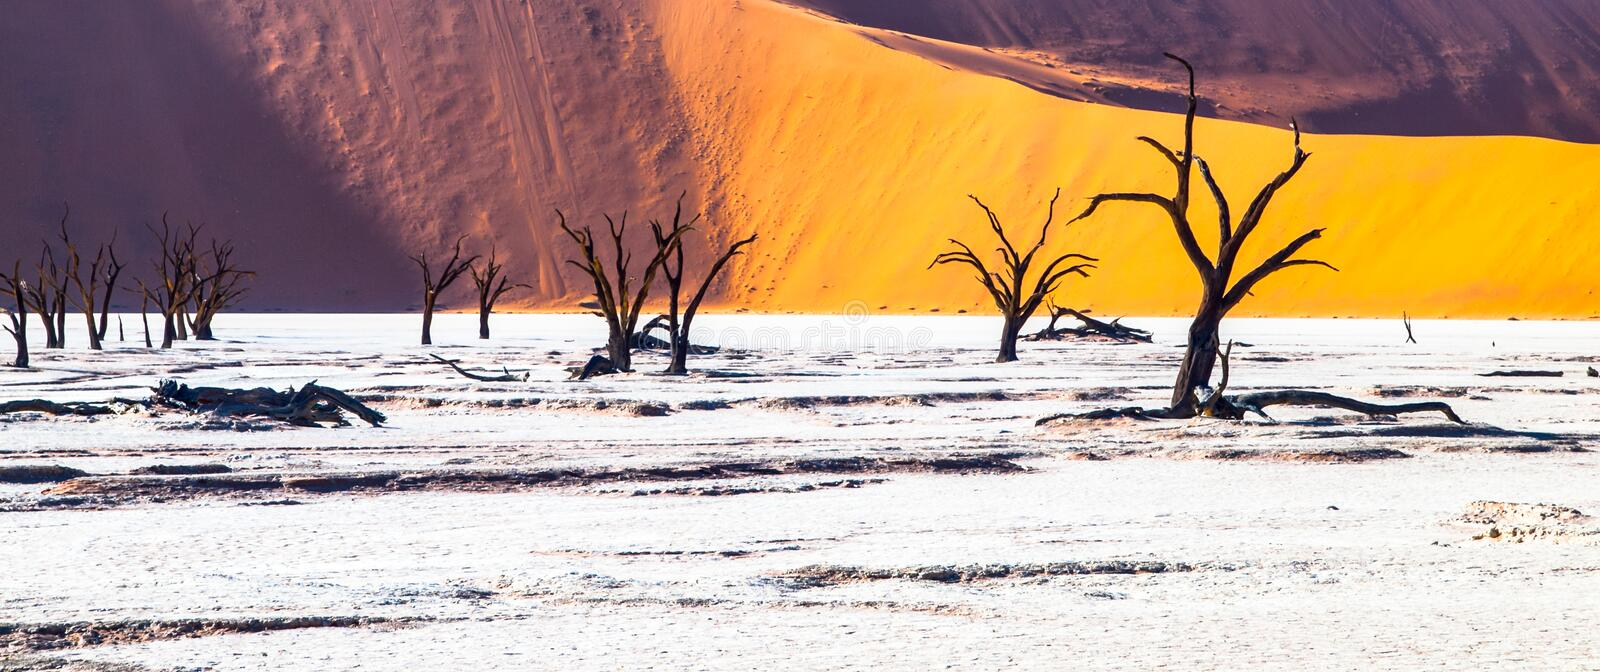 Dead camel thorn trees in Deadvlei dry pan with cracked soil in the middle of Namib Desert red dunes, Sossusvlei. Dead camel thorn trees in Deadvlei dry pan with royalty free stock photography